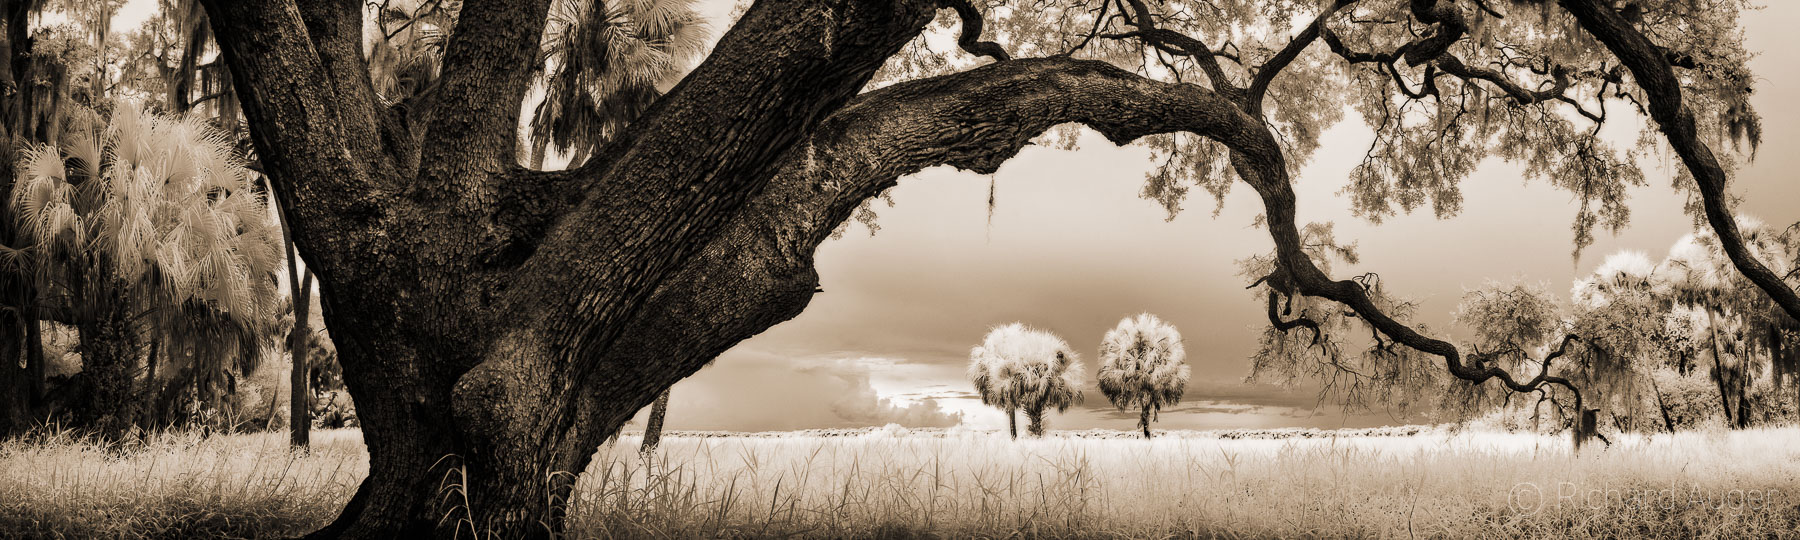 Myakka River State Park, Florida, Oak, Palm Trees, Swamp, Haunted, Sepia, Monochrome, Photograph, Nature, panorama